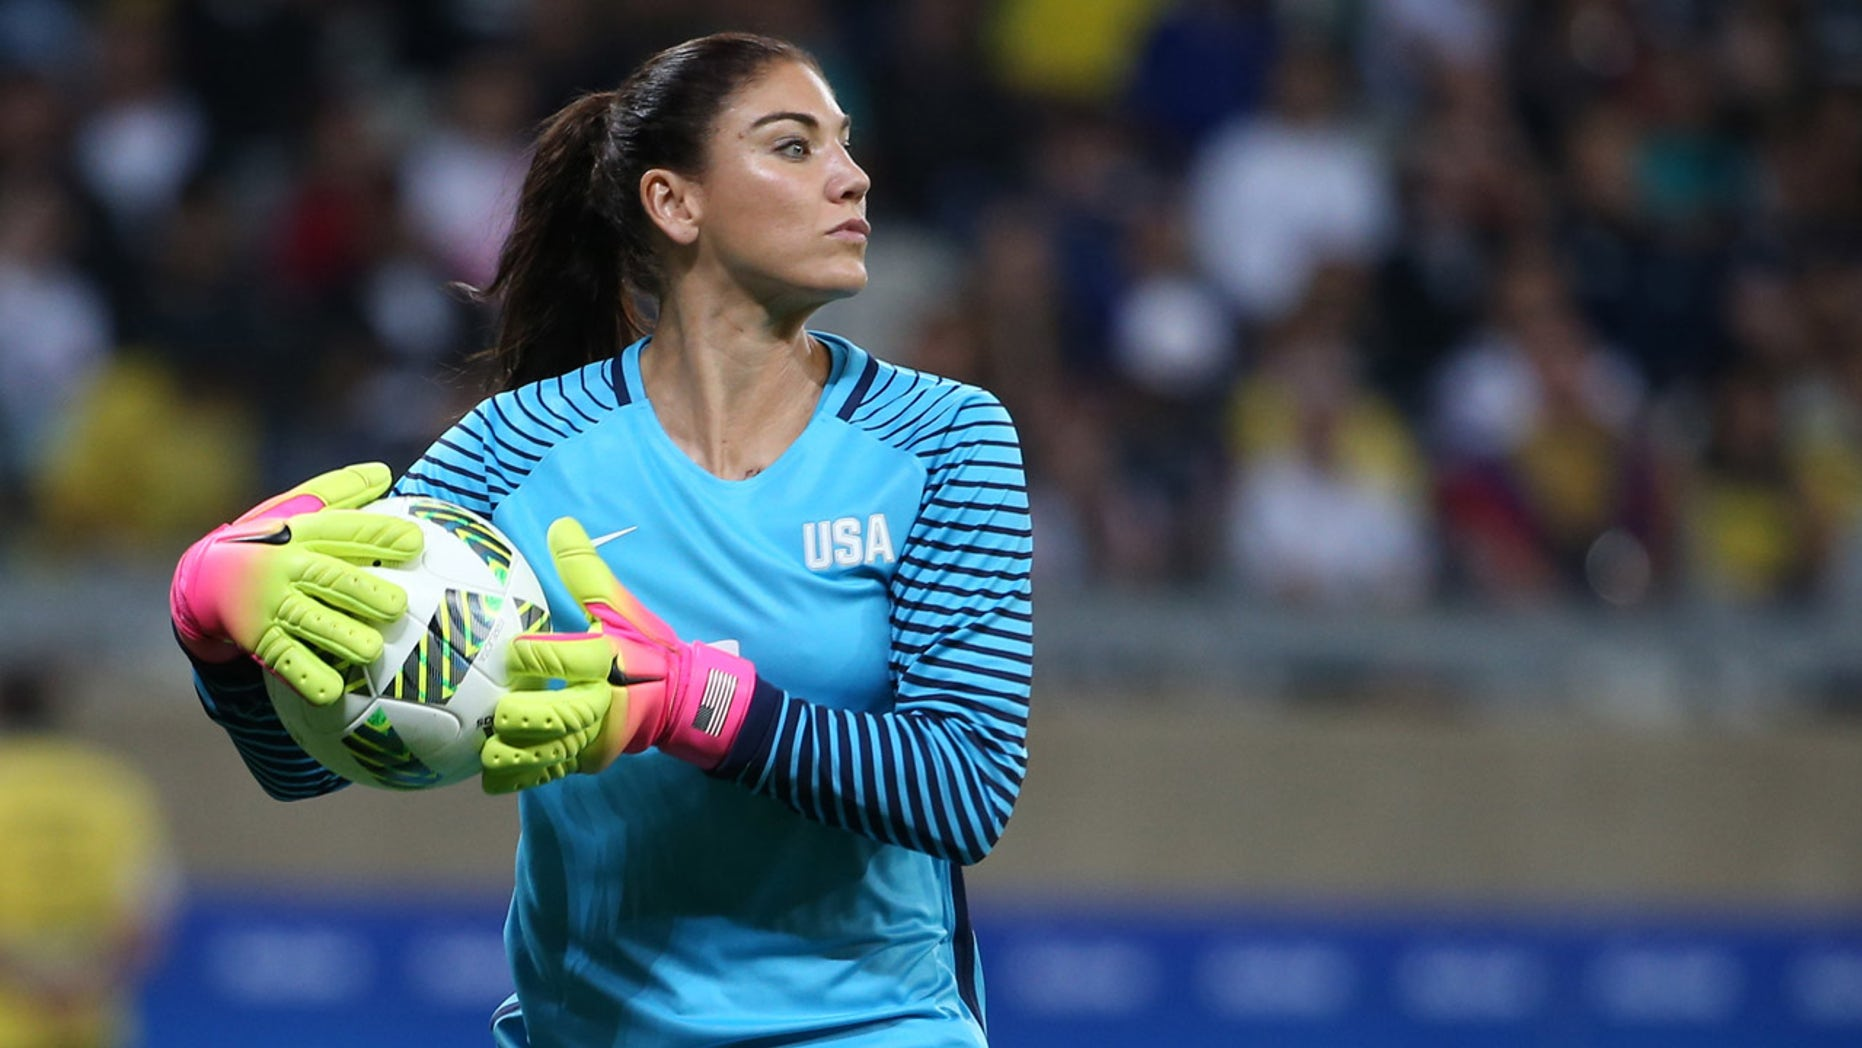 United States goalkeeper Hope Solo takes the ball during a women's Olympic football tournament match against New Zealand at the Mineirao stadium in Belo Horizonte, Brazil, Wednesday, Aug. 3, 2016. (AP Photo/Eugenio Savio)